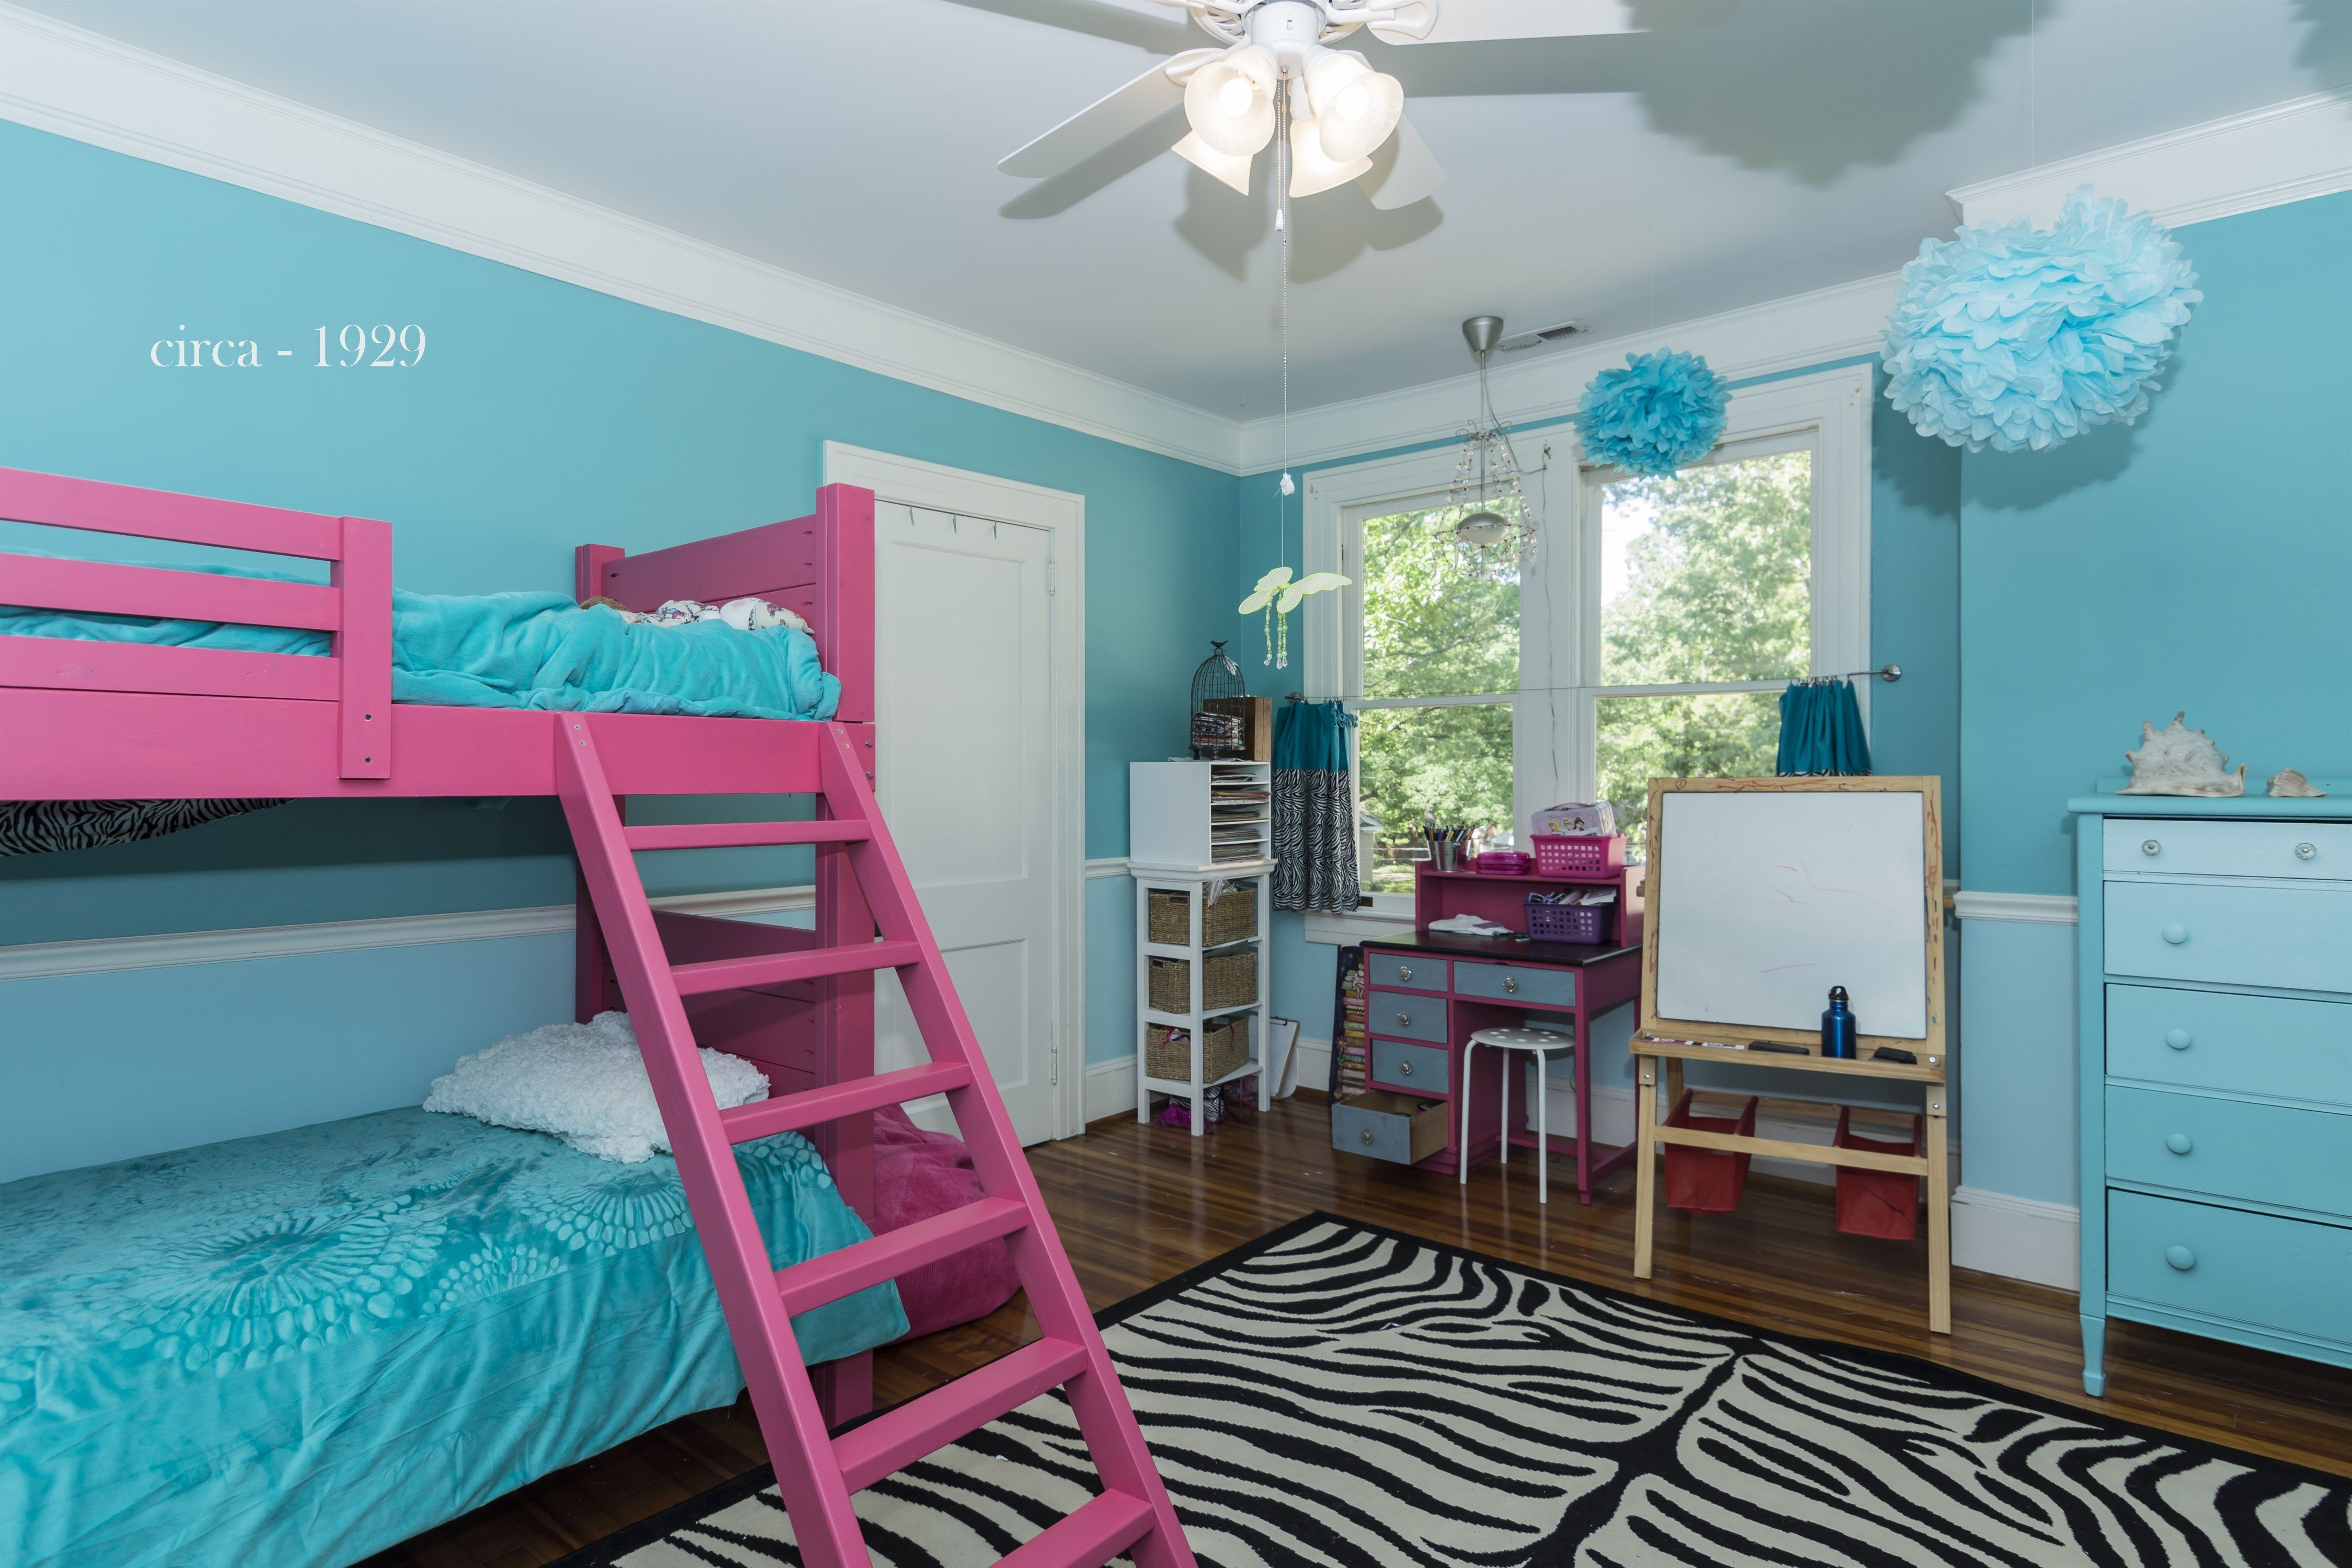 Inspiring twin bedroom ideas for teenage girls with teal and pink colors themes